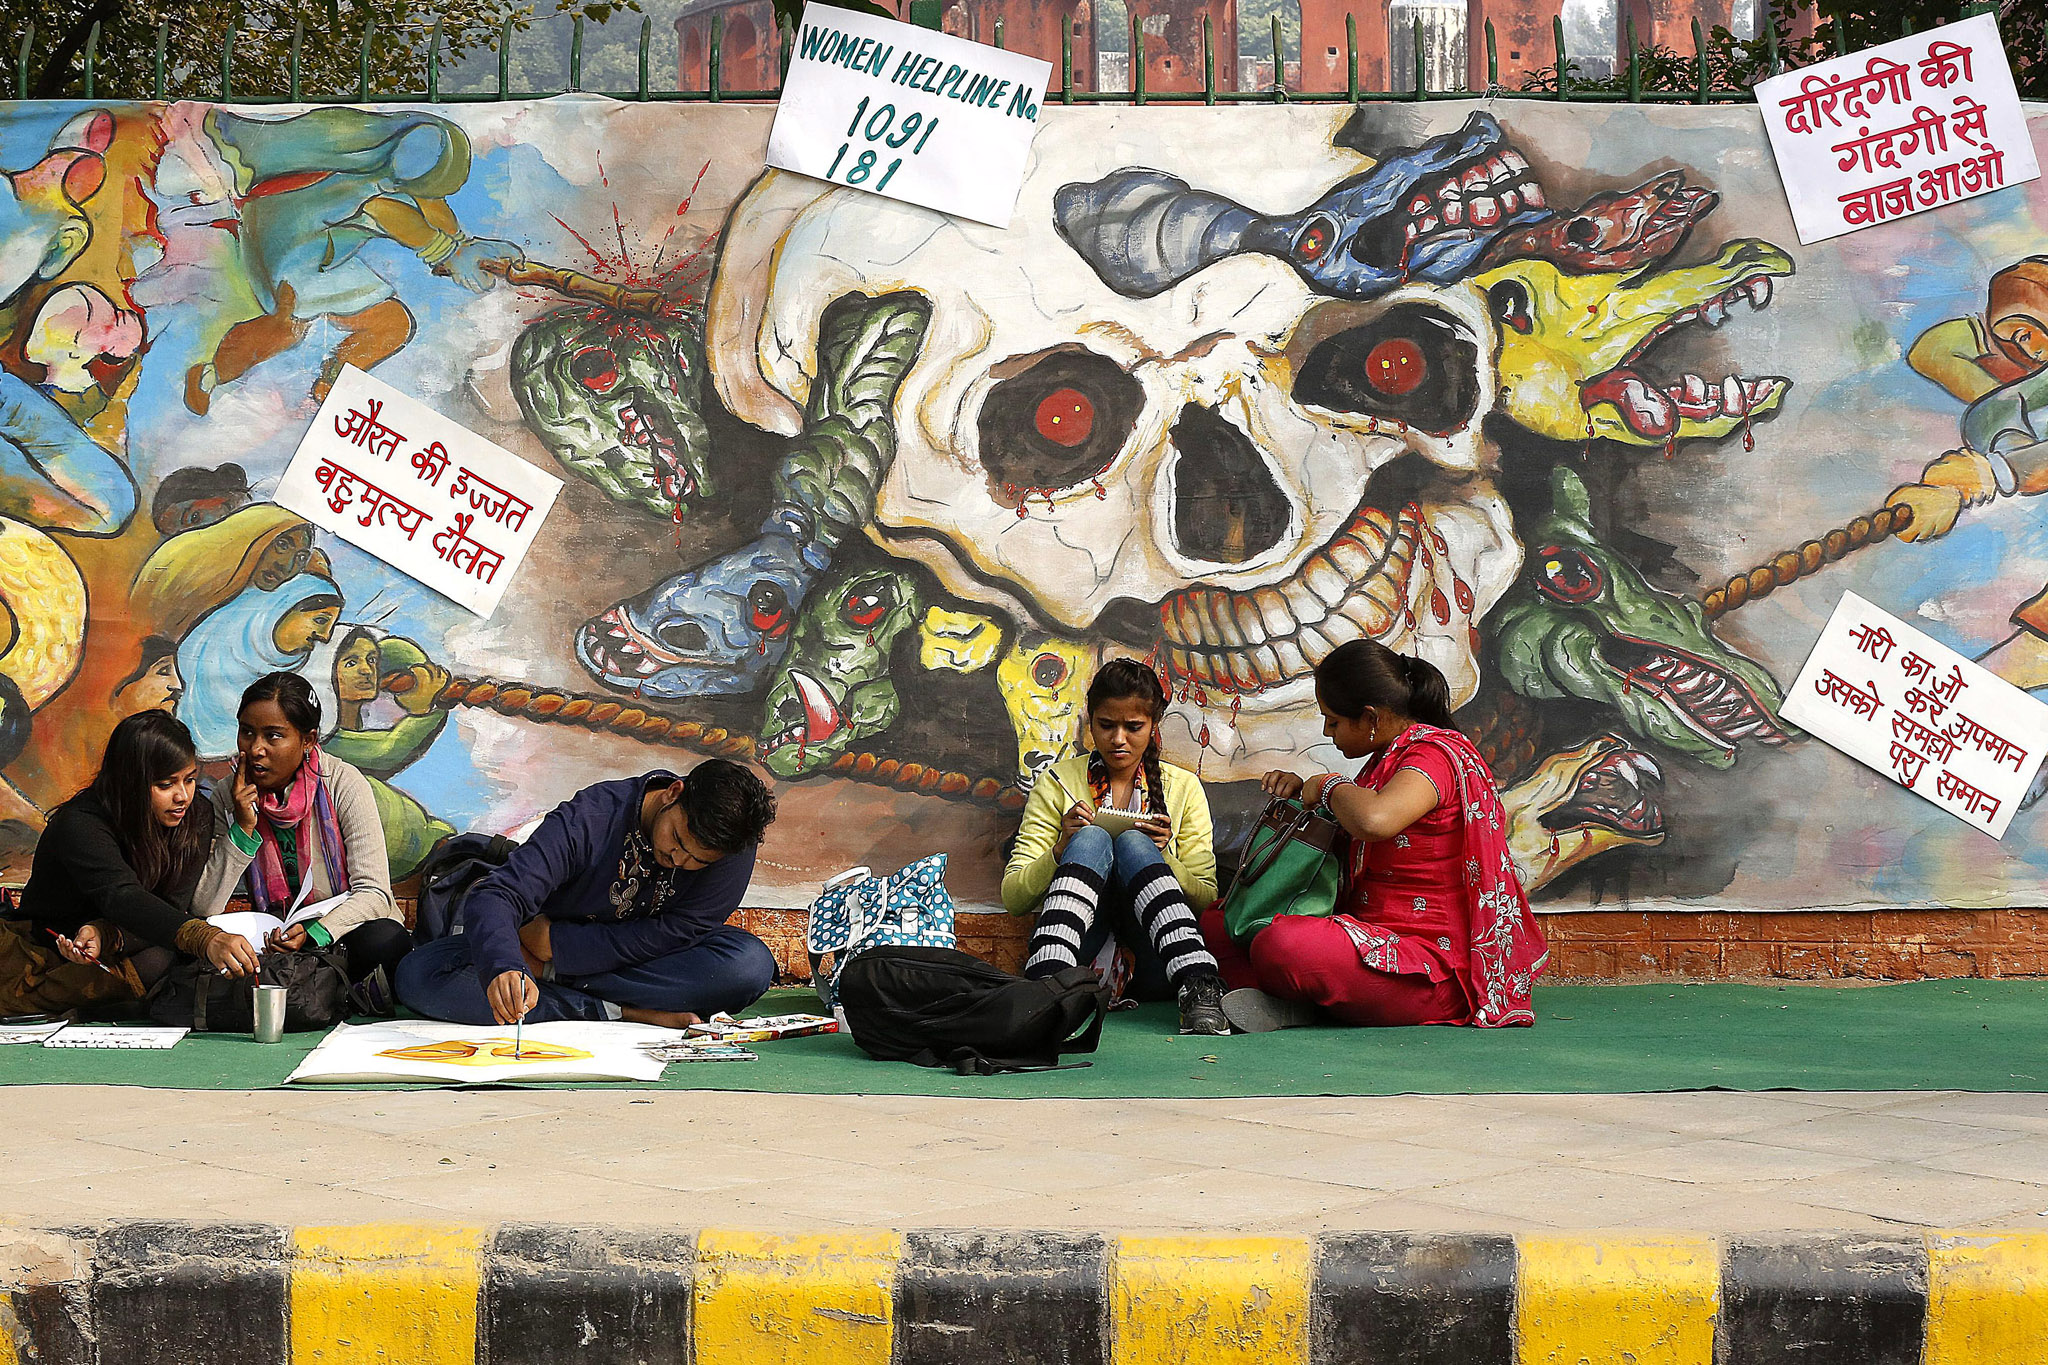 One year on, Delhi remembers gang rape victim